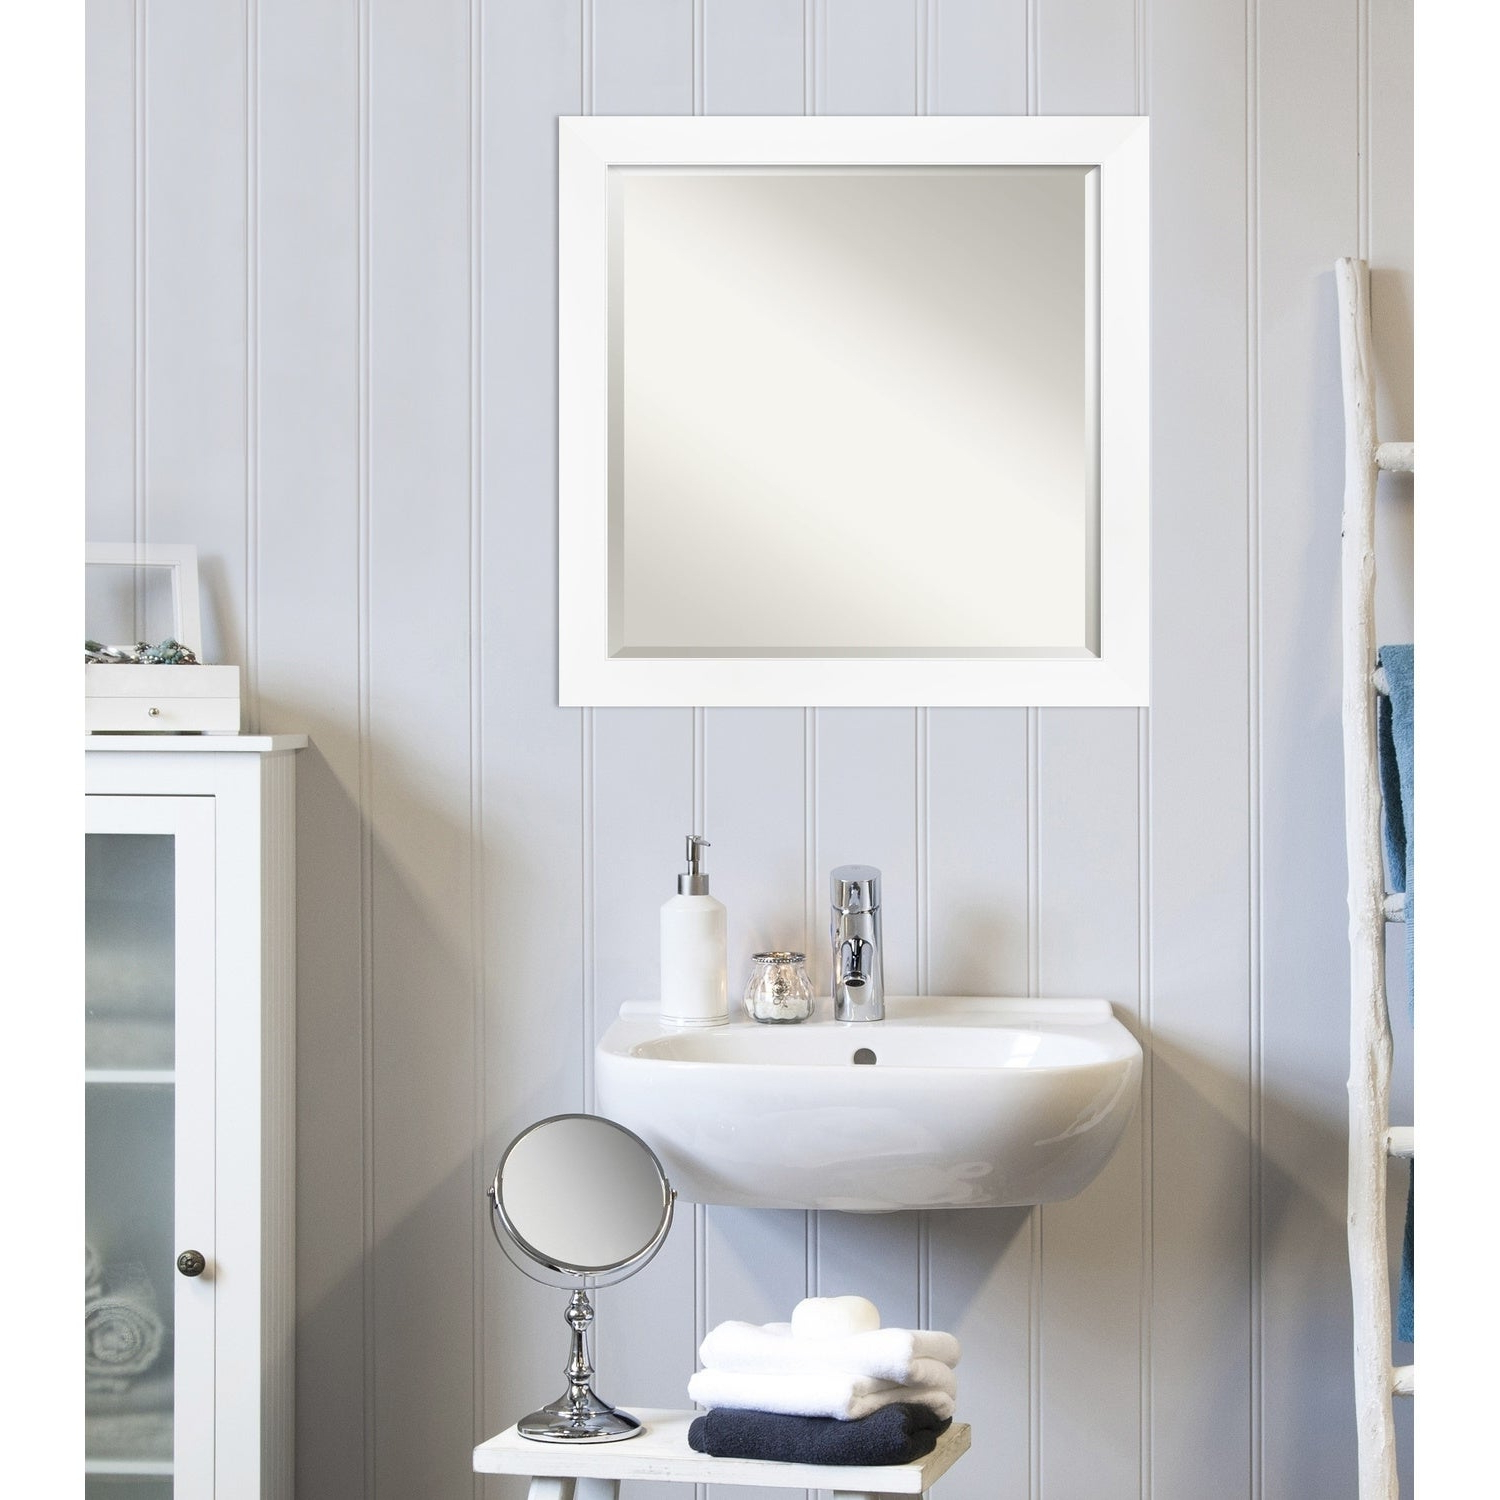 Cabinet White Narrow Bathroom Vanity Wall Mirror Regarding Recent Bathroom Vanity Wall Mirrors (View 15 of 20)